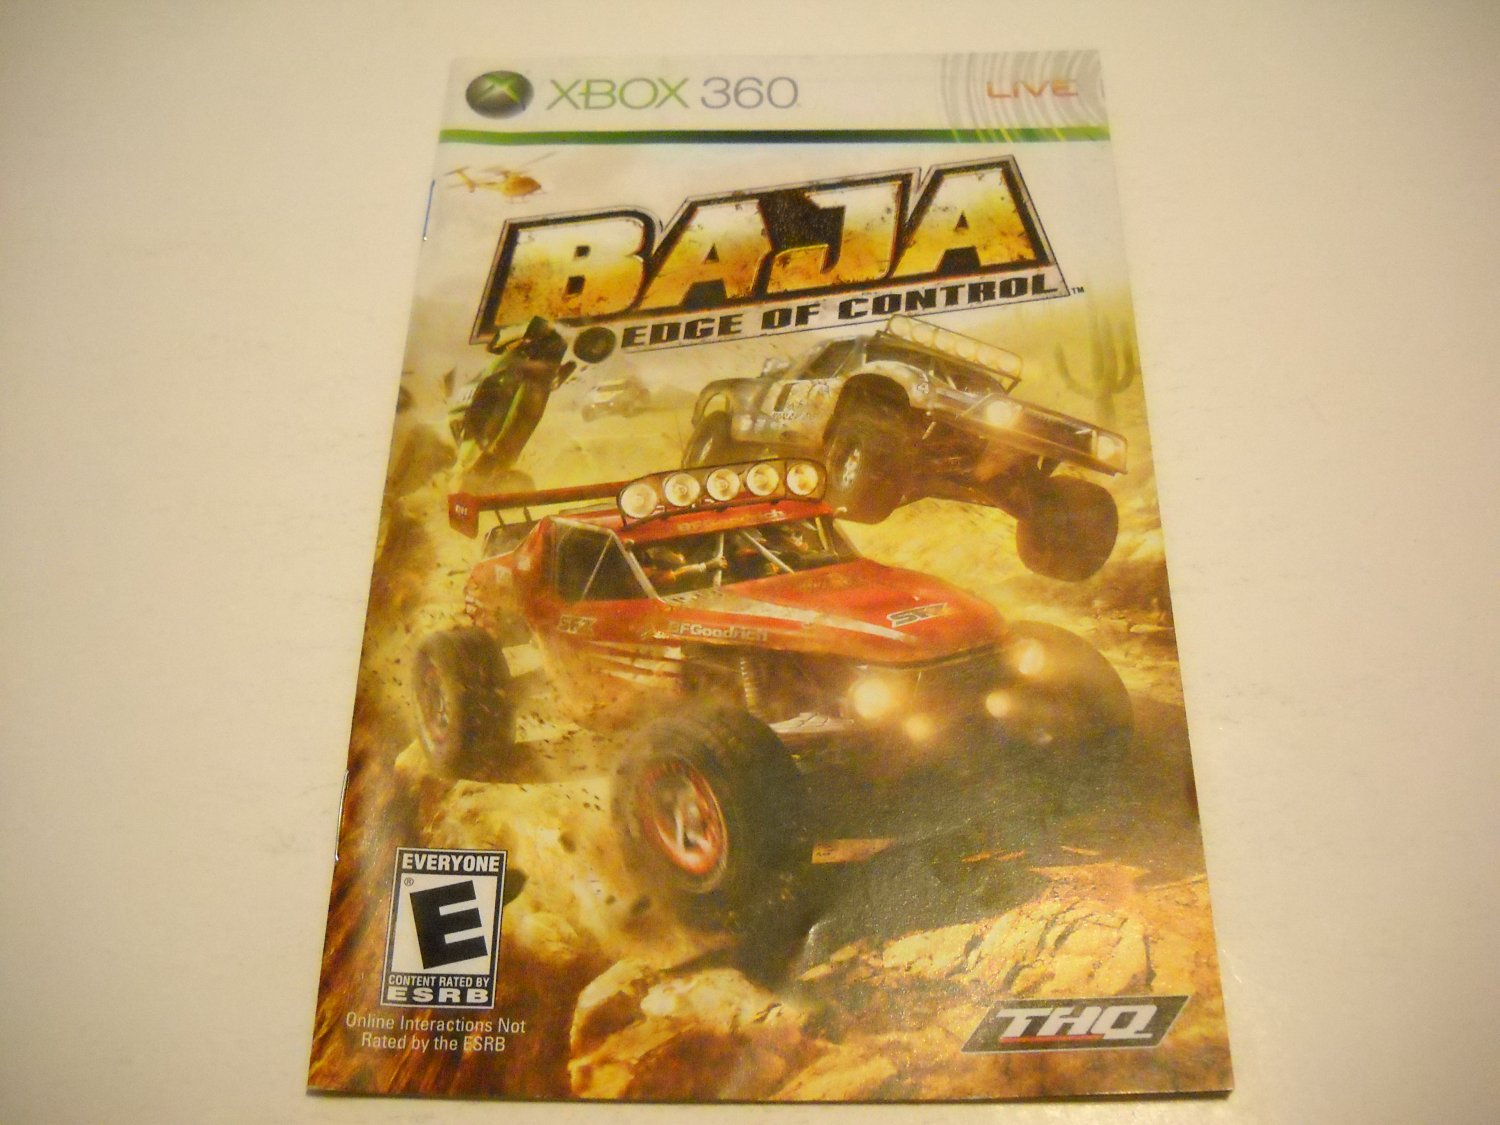 Manual ONLY ~  for Baja Edge of Control   - Xbox 360 Instruction Booklet